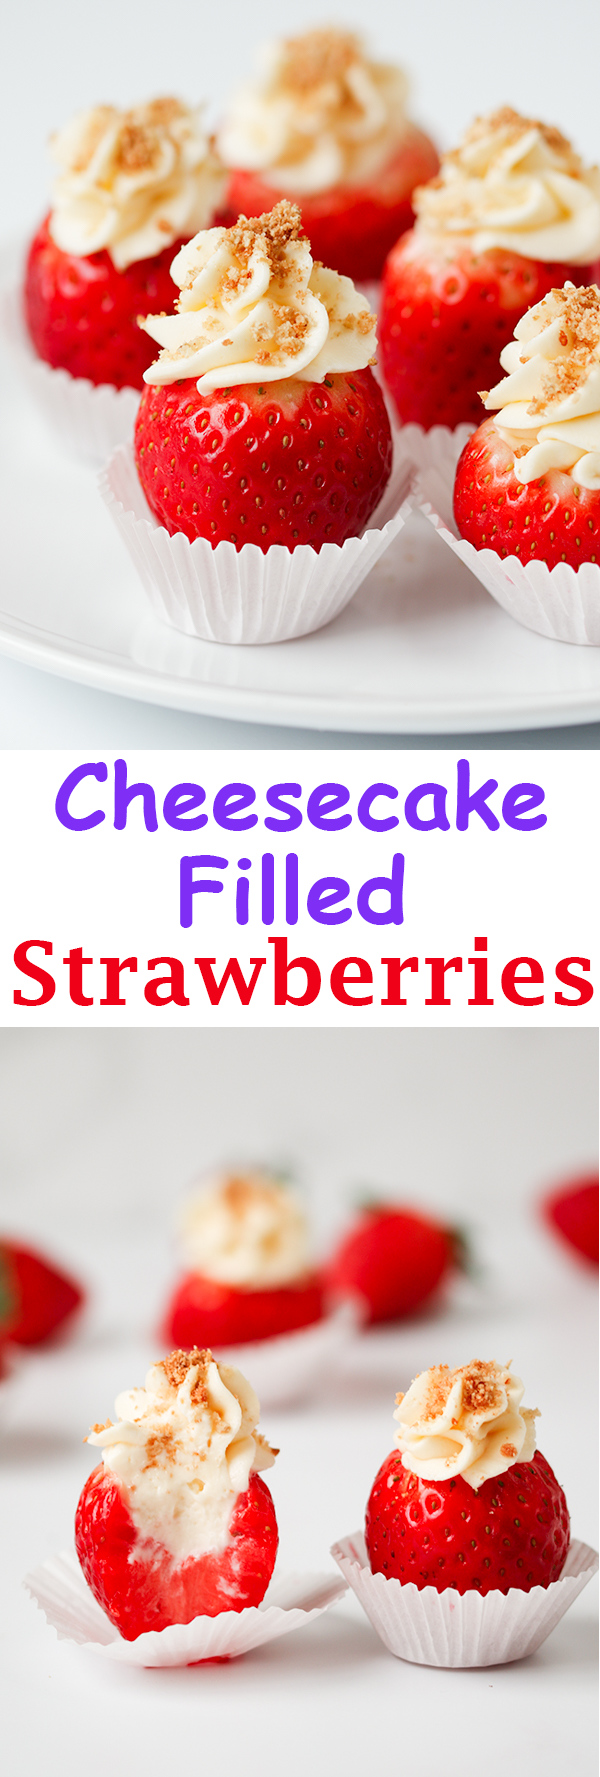 cheesecake stuffed strawberries pin